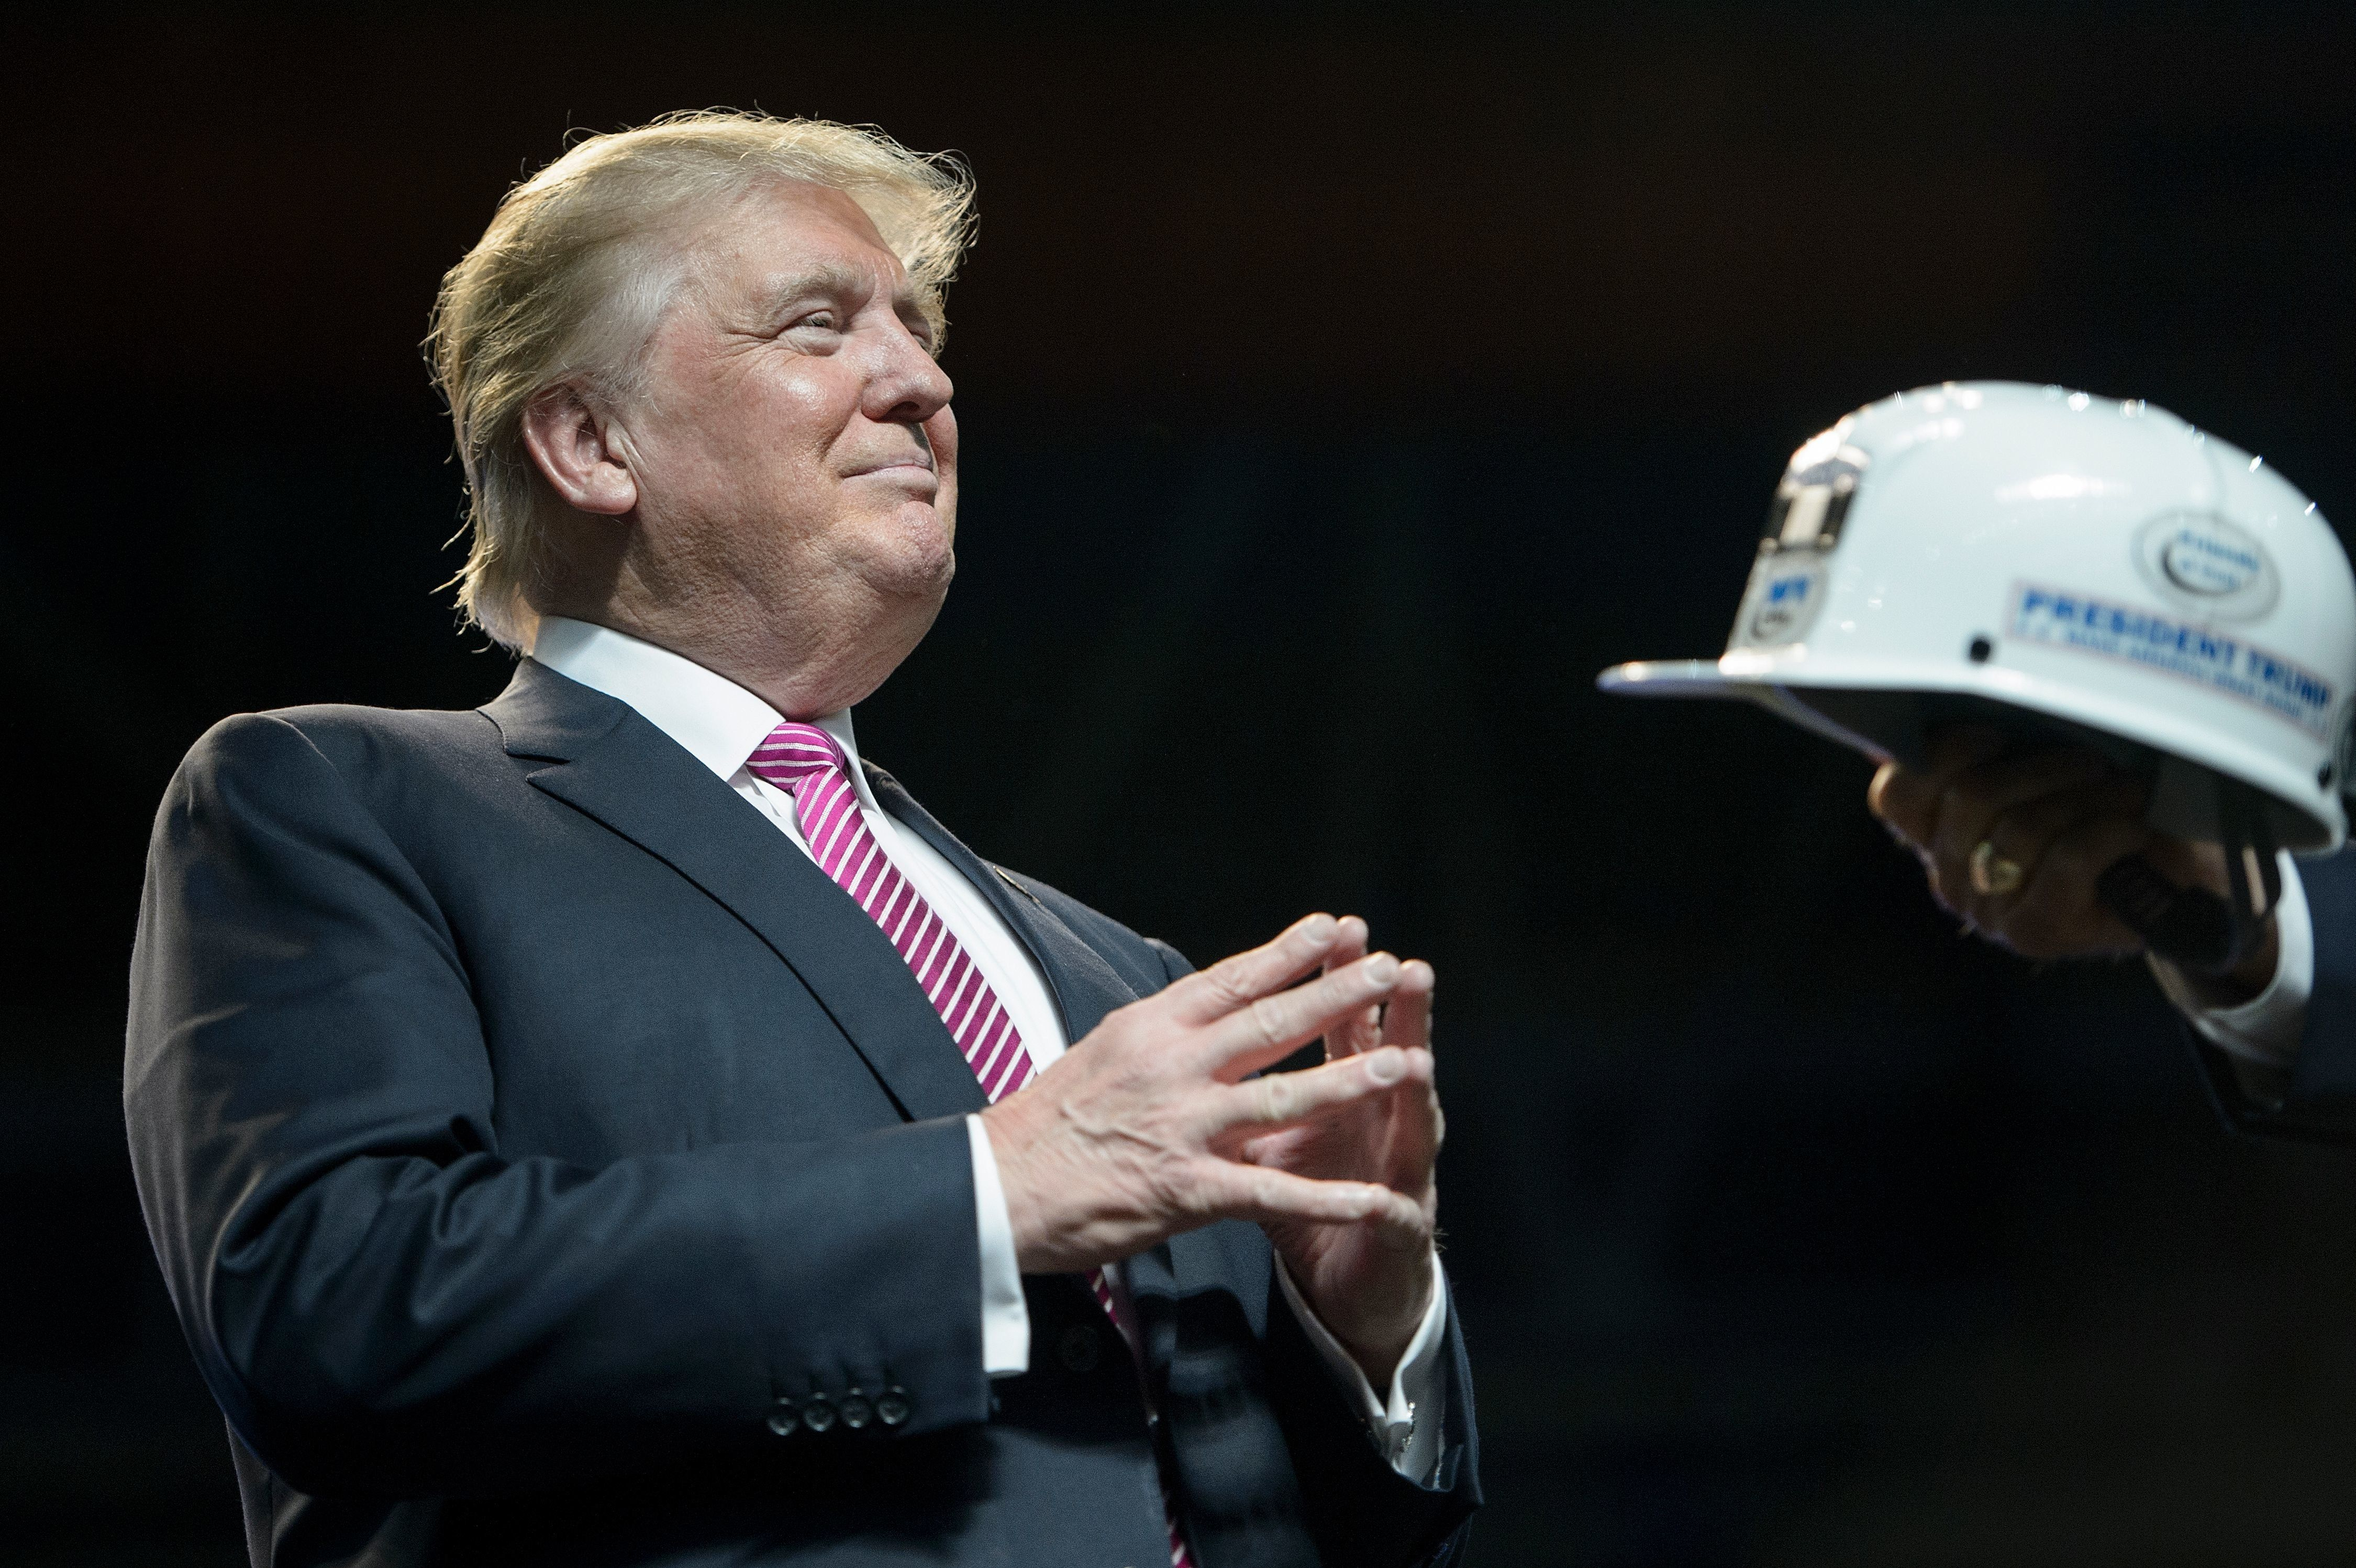 US Republican presidential candidate Donald Trump is given a miner's hat during a rally May 5, 2016 in Charleston, West Virginia. / AFP / Brendan Smialowski        (Photo credit should read BRENDAN SMIALOWSKI/AFP/Getty Images)